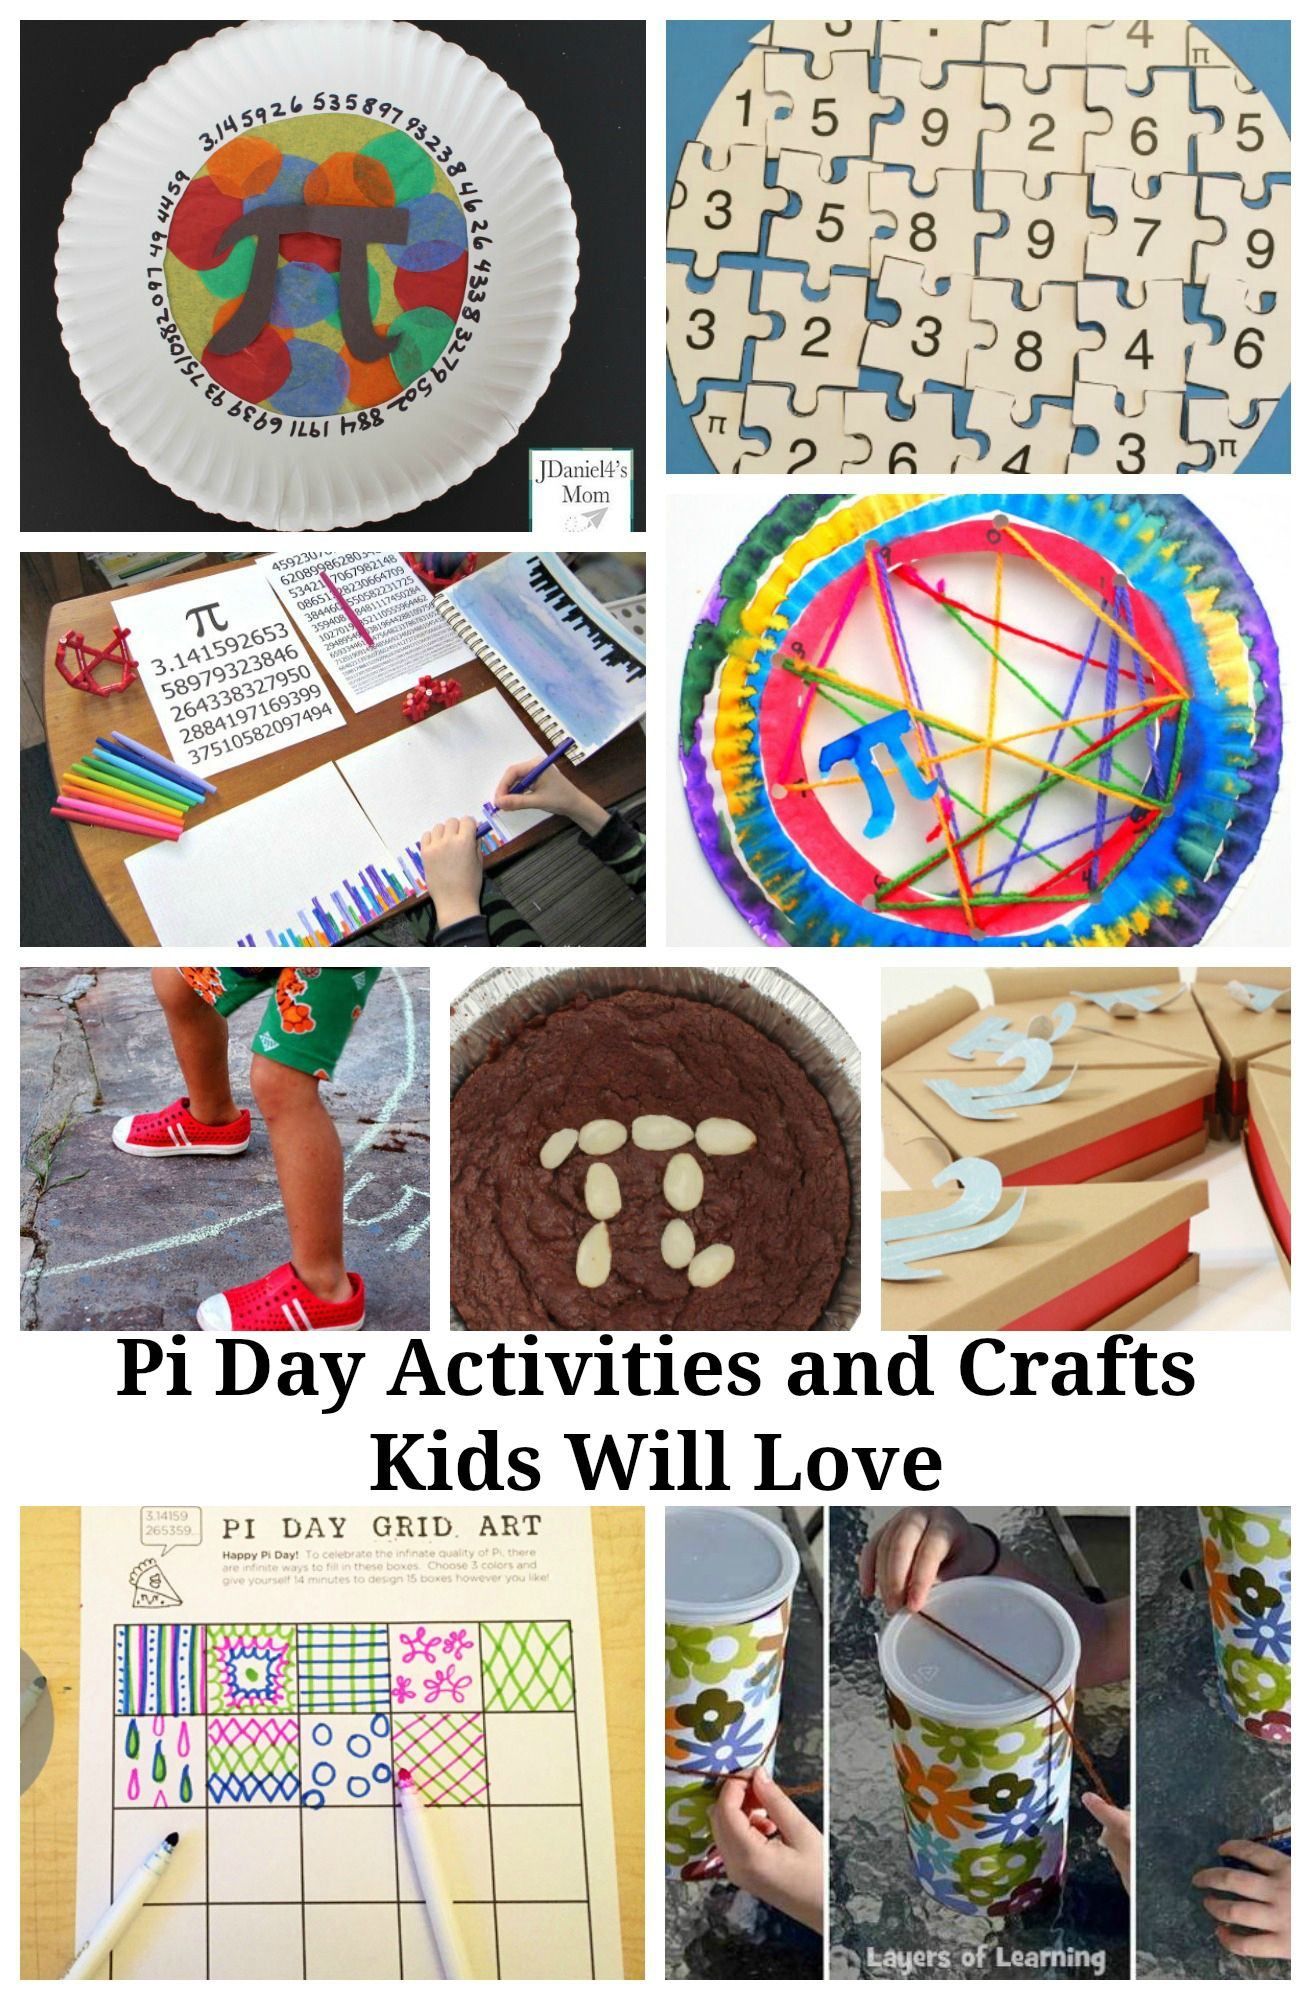 Pi Day Activities And Crafts Kids Will Love Jdaniel4s Mom Kids Learning Activities Pi Day Activities [ 2000 x 1311 Pixel ]